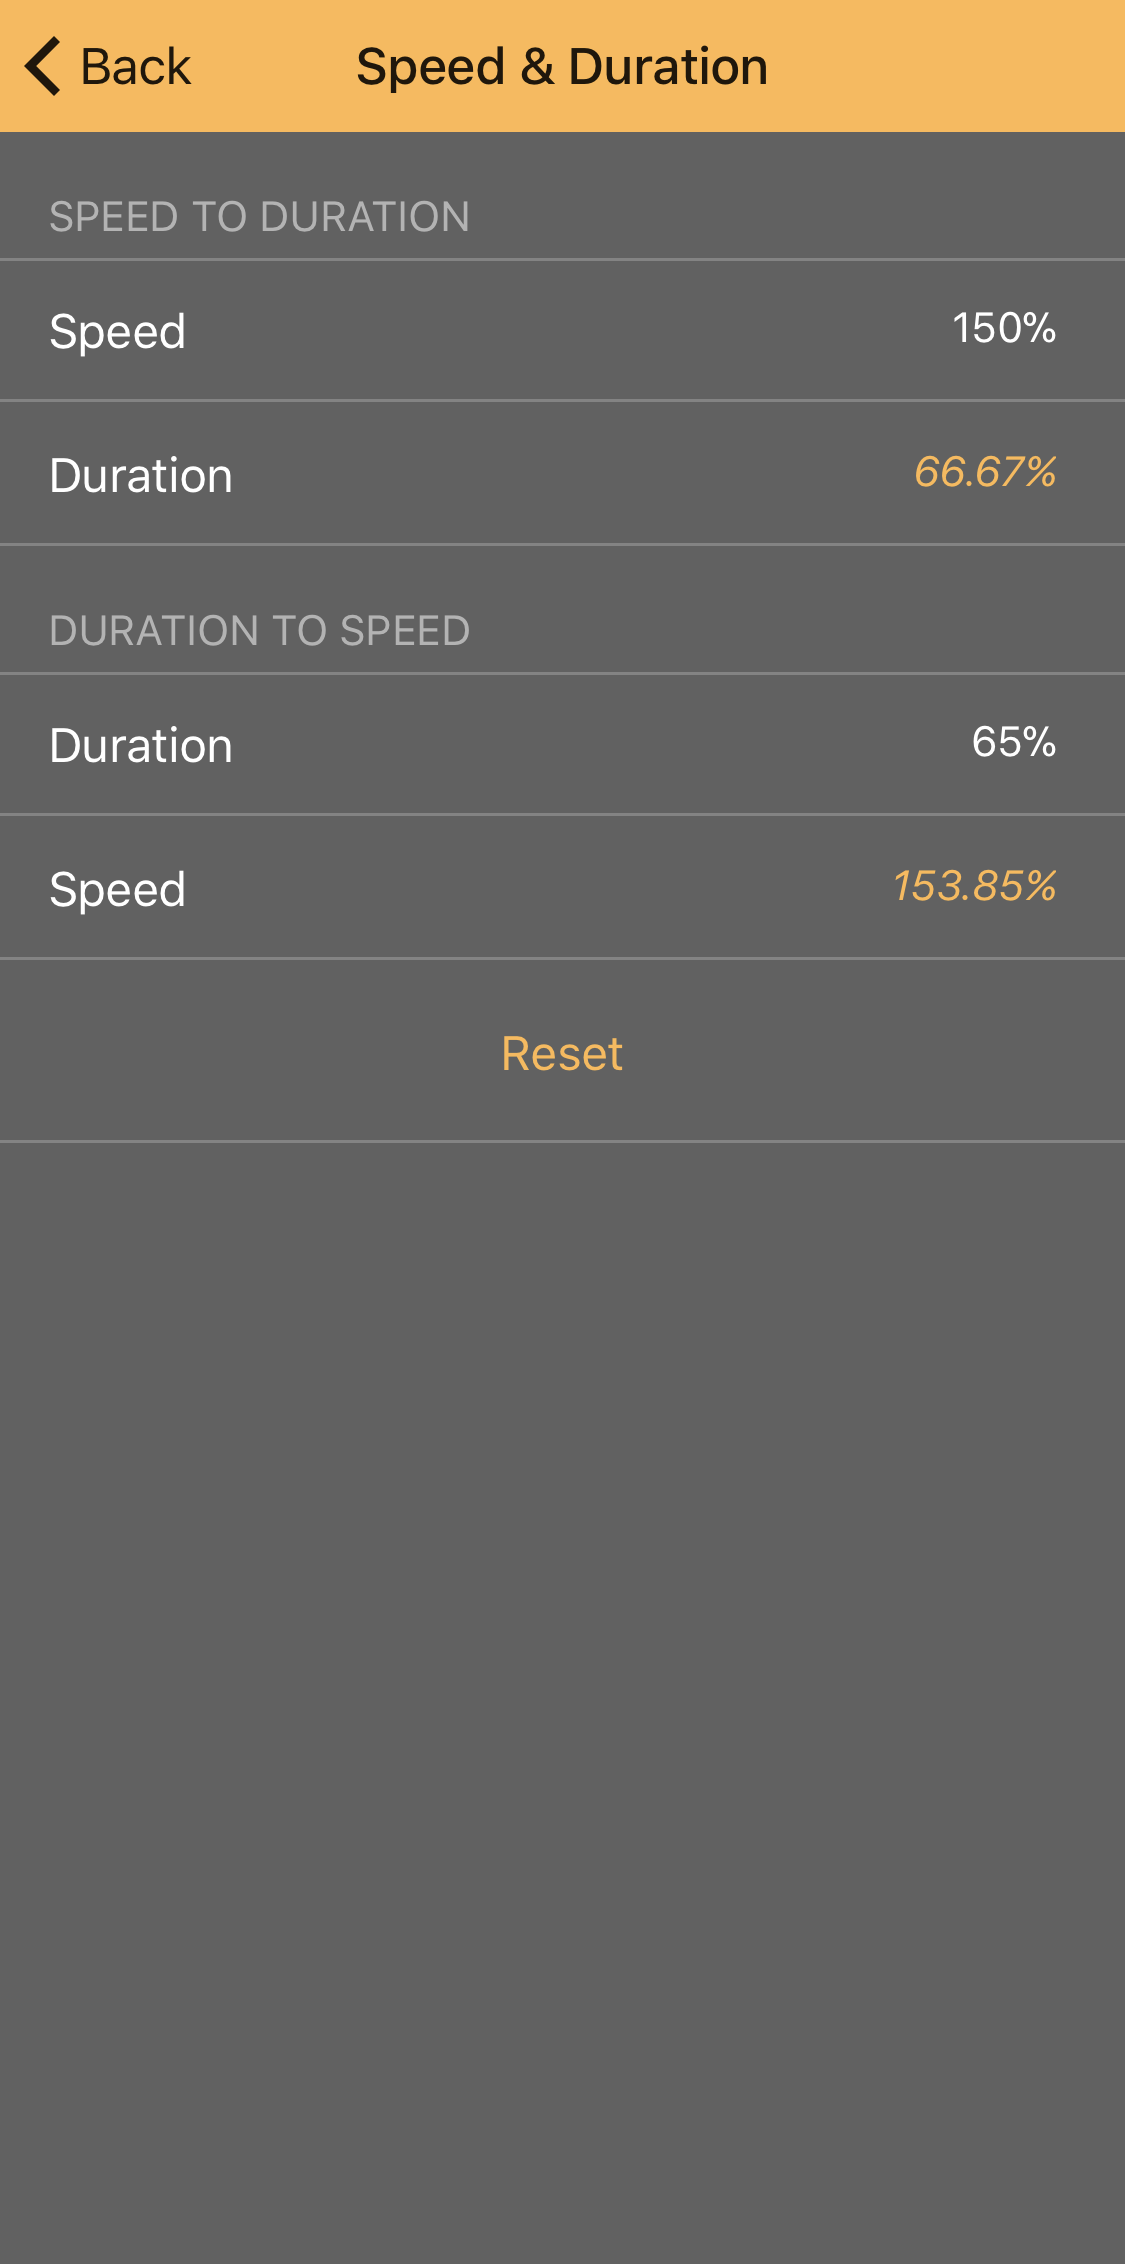 Speed & Duration - Some apps express speed changes as Speed, others use